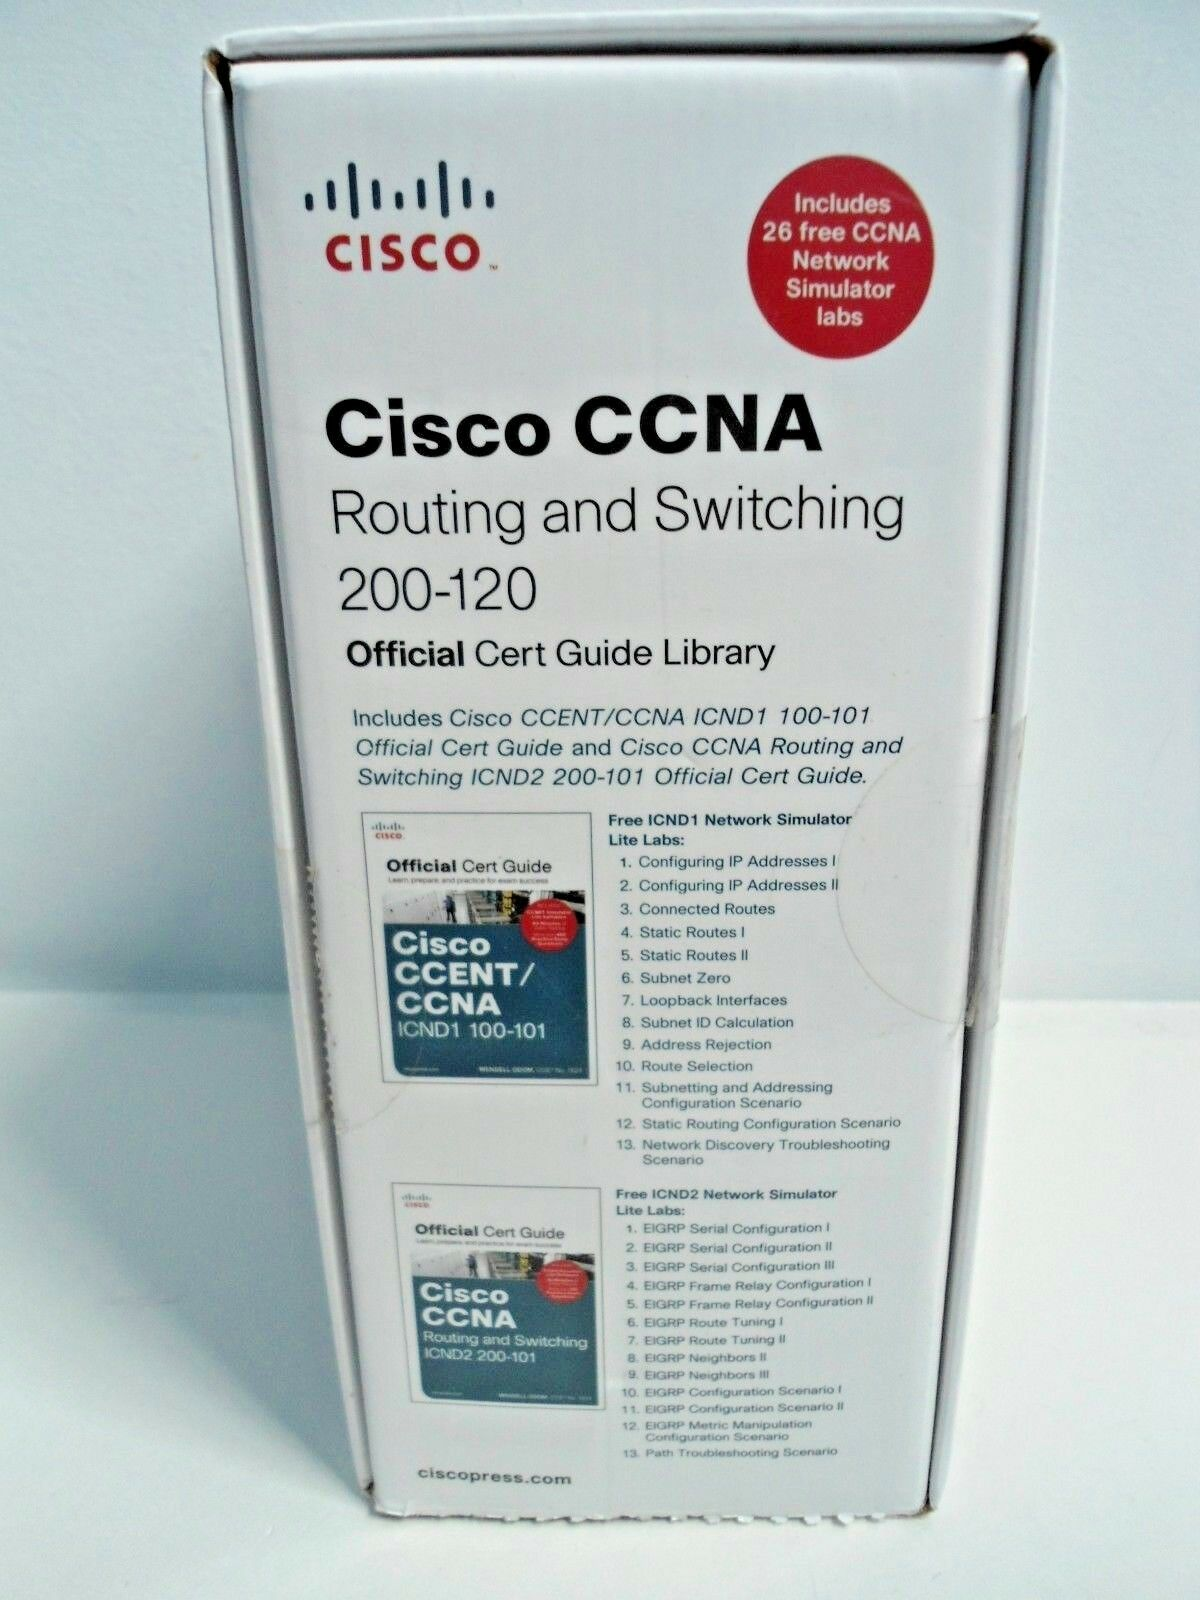 Official Cert Guide: Cisco CCNA Routing and Switching 200-120 Official Cert  Guide Library by Wendell Odom (2013, Paperback / Mixed Media) | eBay